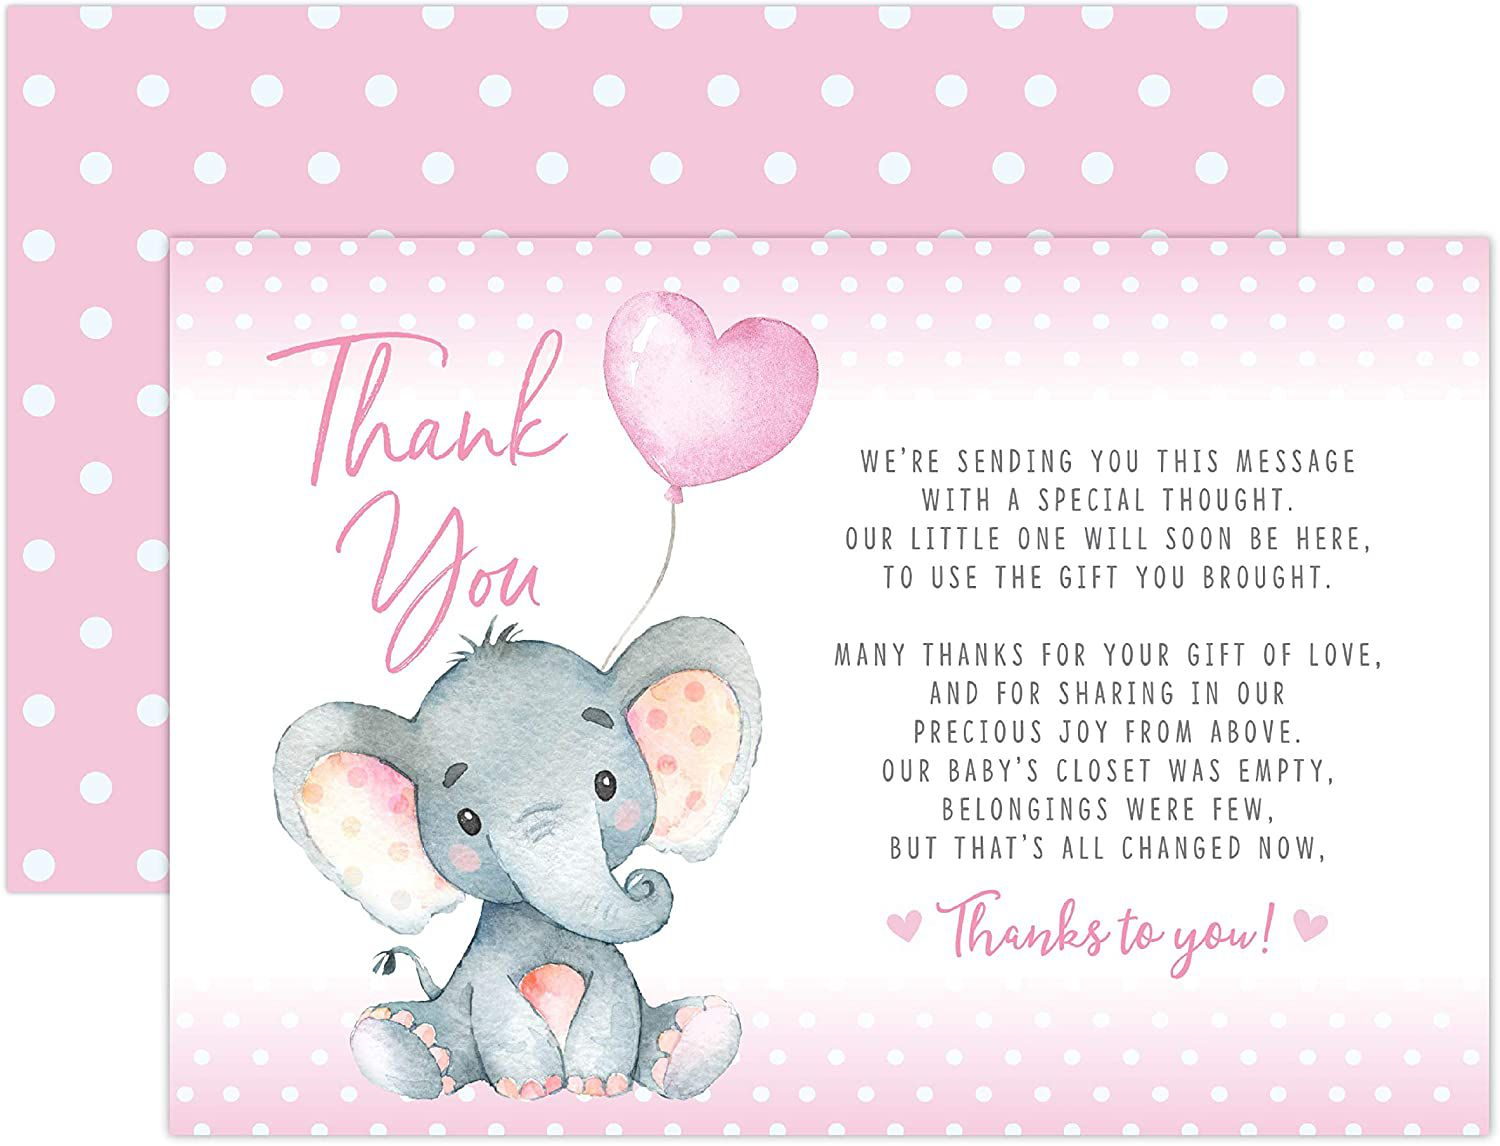 002 Amazing Thank You Card Wording Baby Shower Example  Note For Money Someone Who Didn't Attend HostesFull